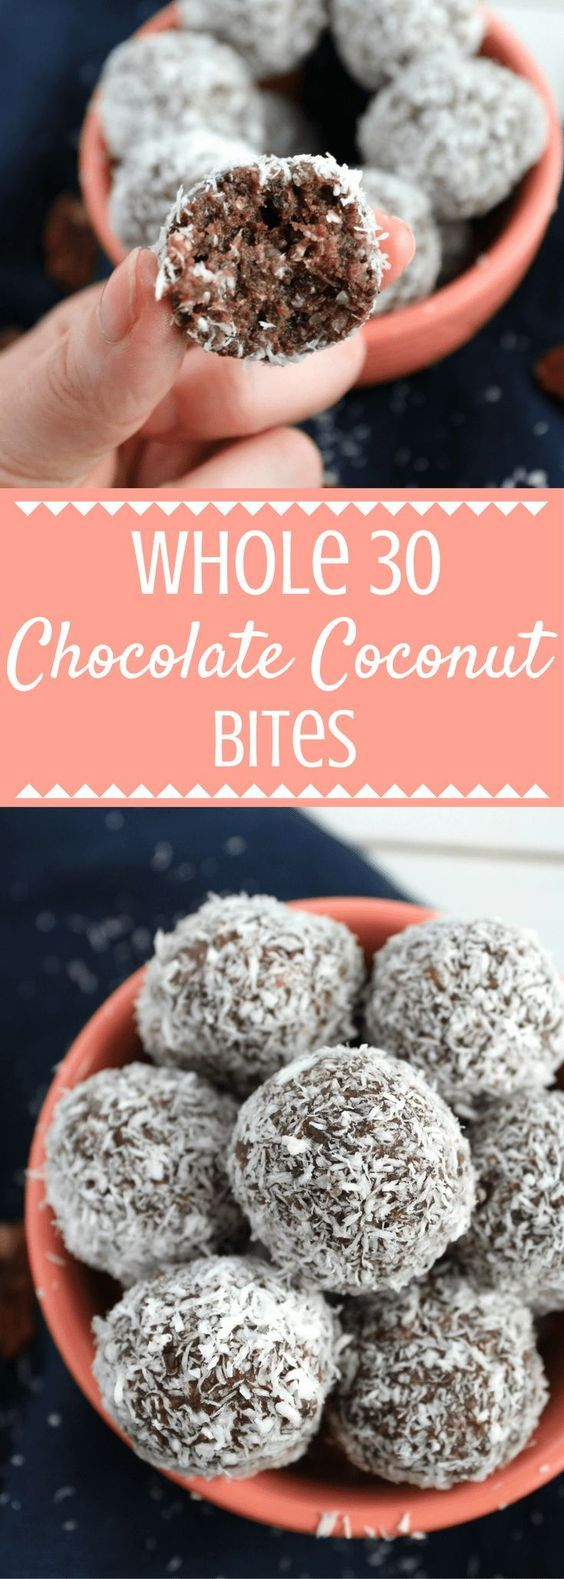 Whole 30 Chocolate Coconut Bites